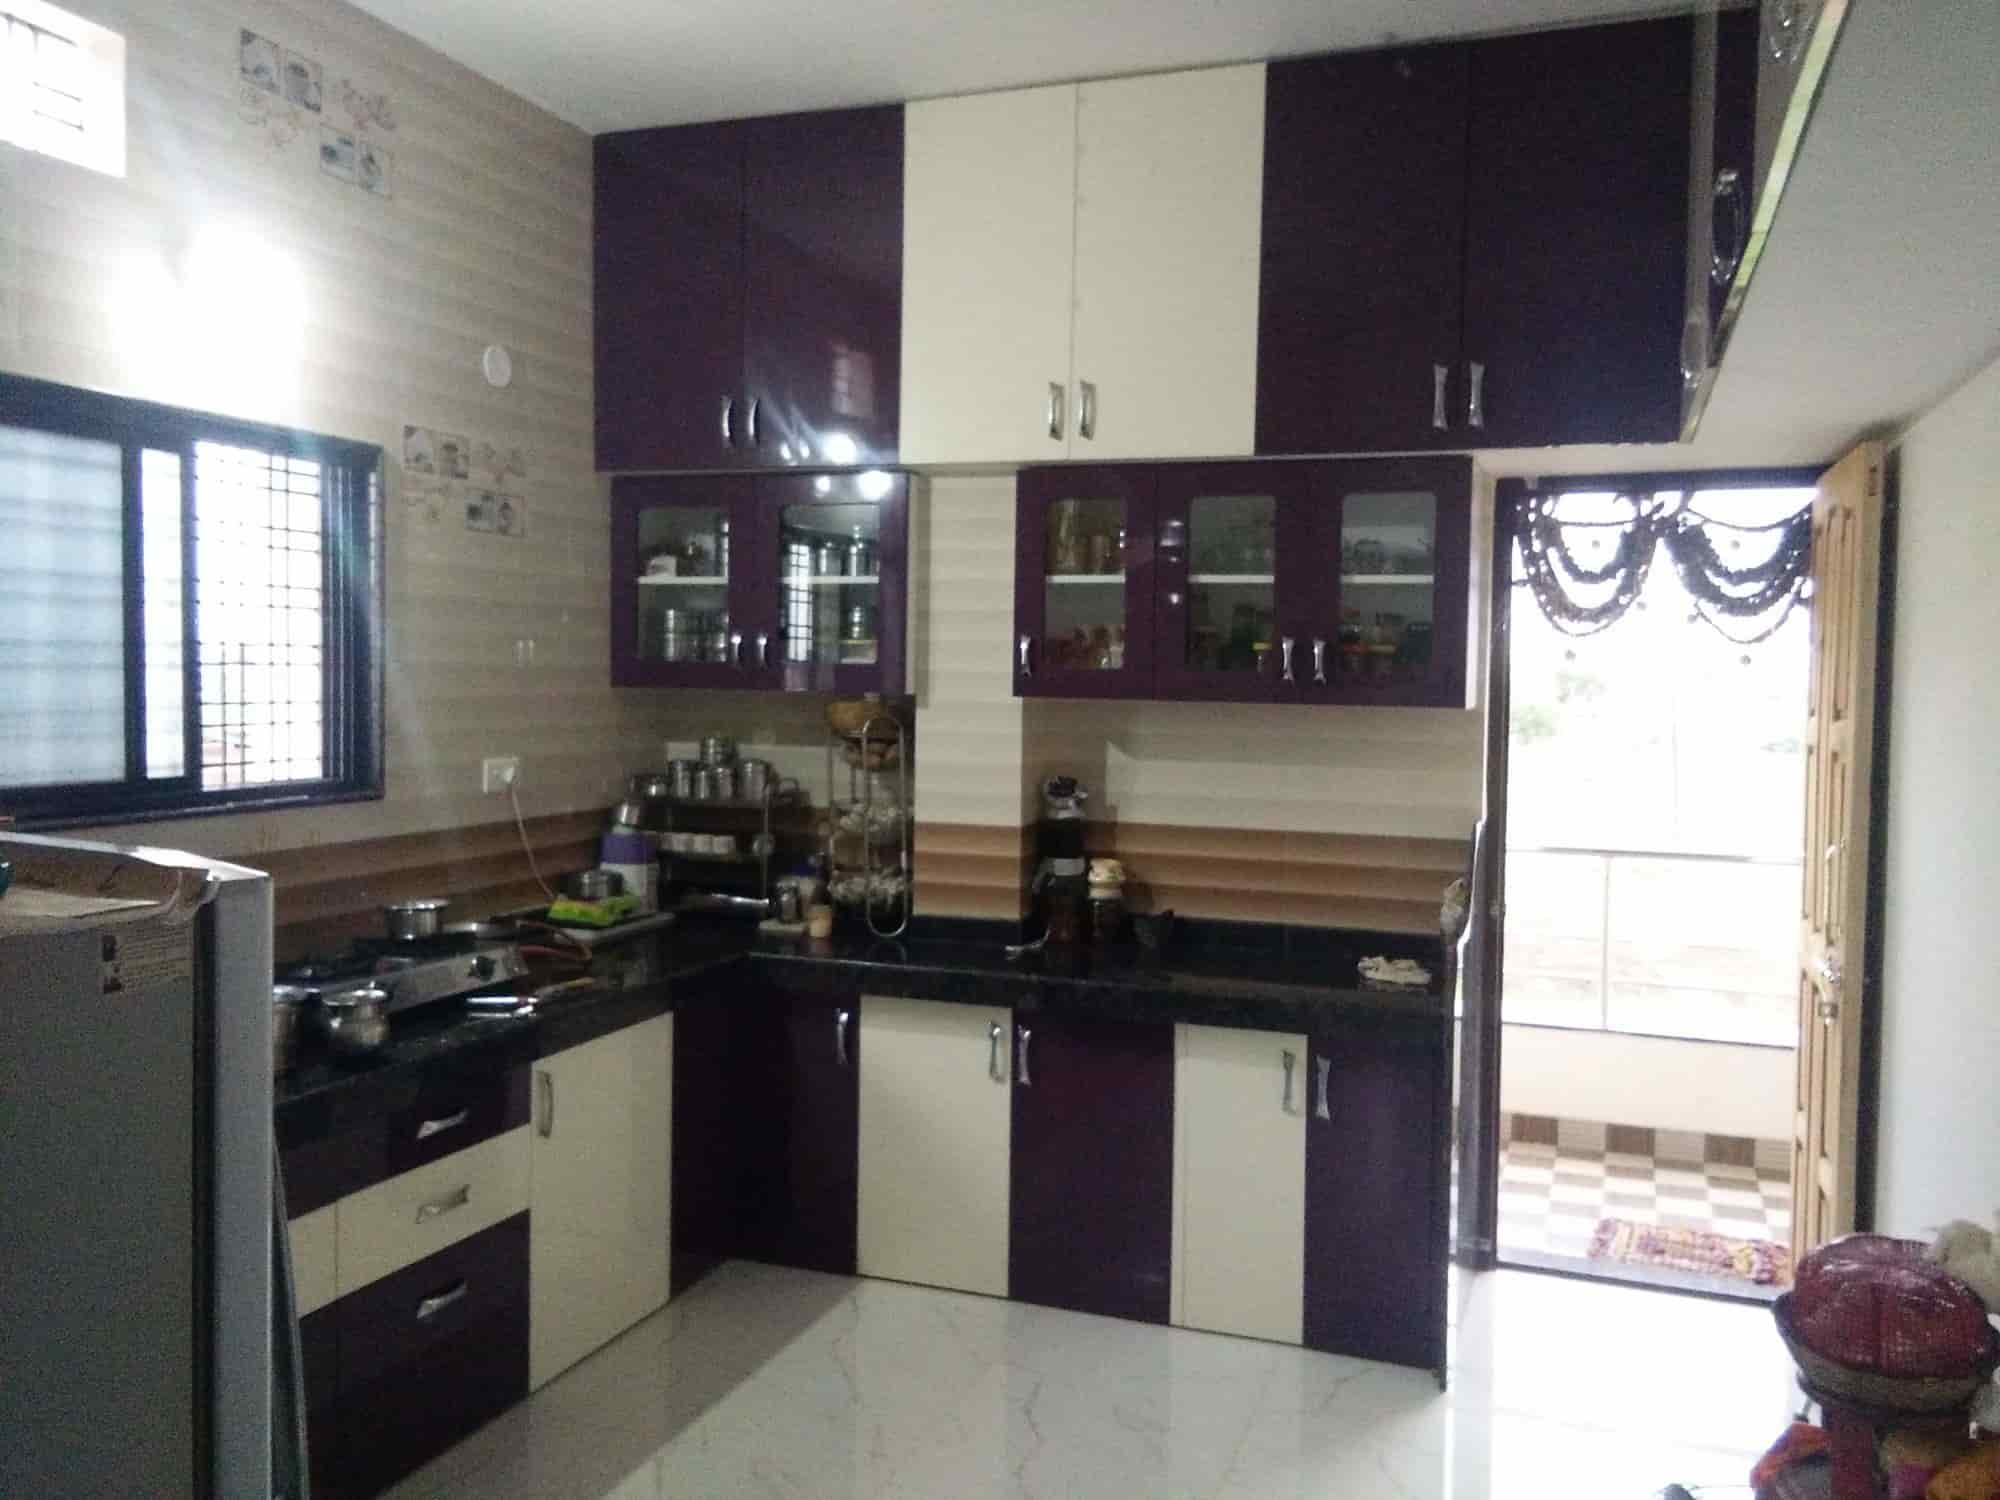 Crystal modular kitchen mahal modular kitchen dealers in nagpur justdial